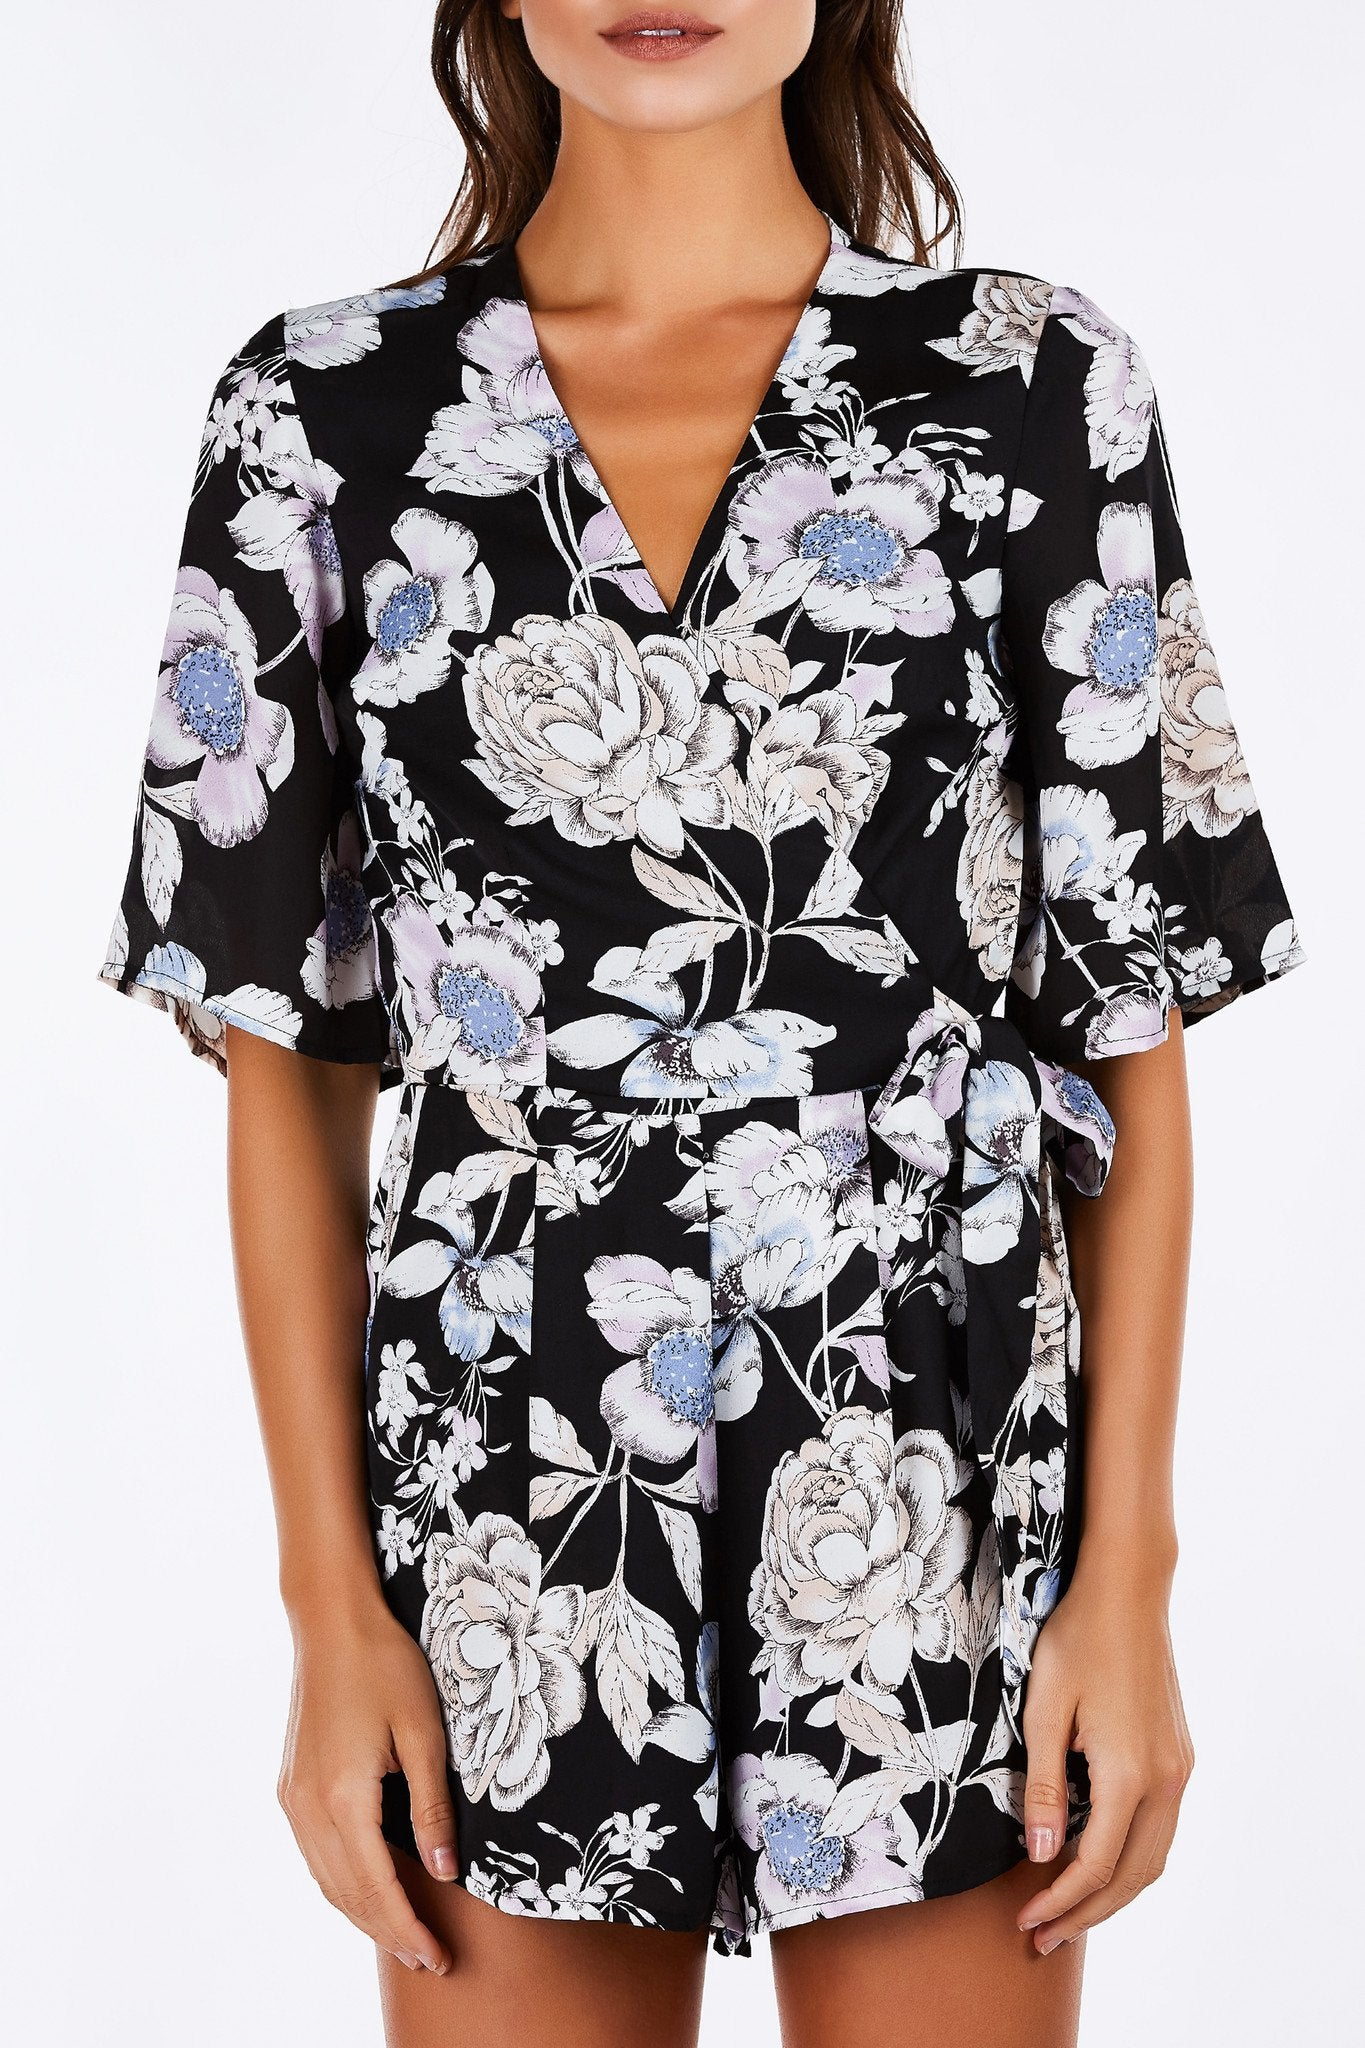 This romper will take everyone's breath away with it's intense, beautiful floral prints throughout. Has a chic cut with a flattering wrap detail in front. Cropped sleeves with functional pockets to keep your belongings safe. Don't fight the temptation to add this romper to your collection!